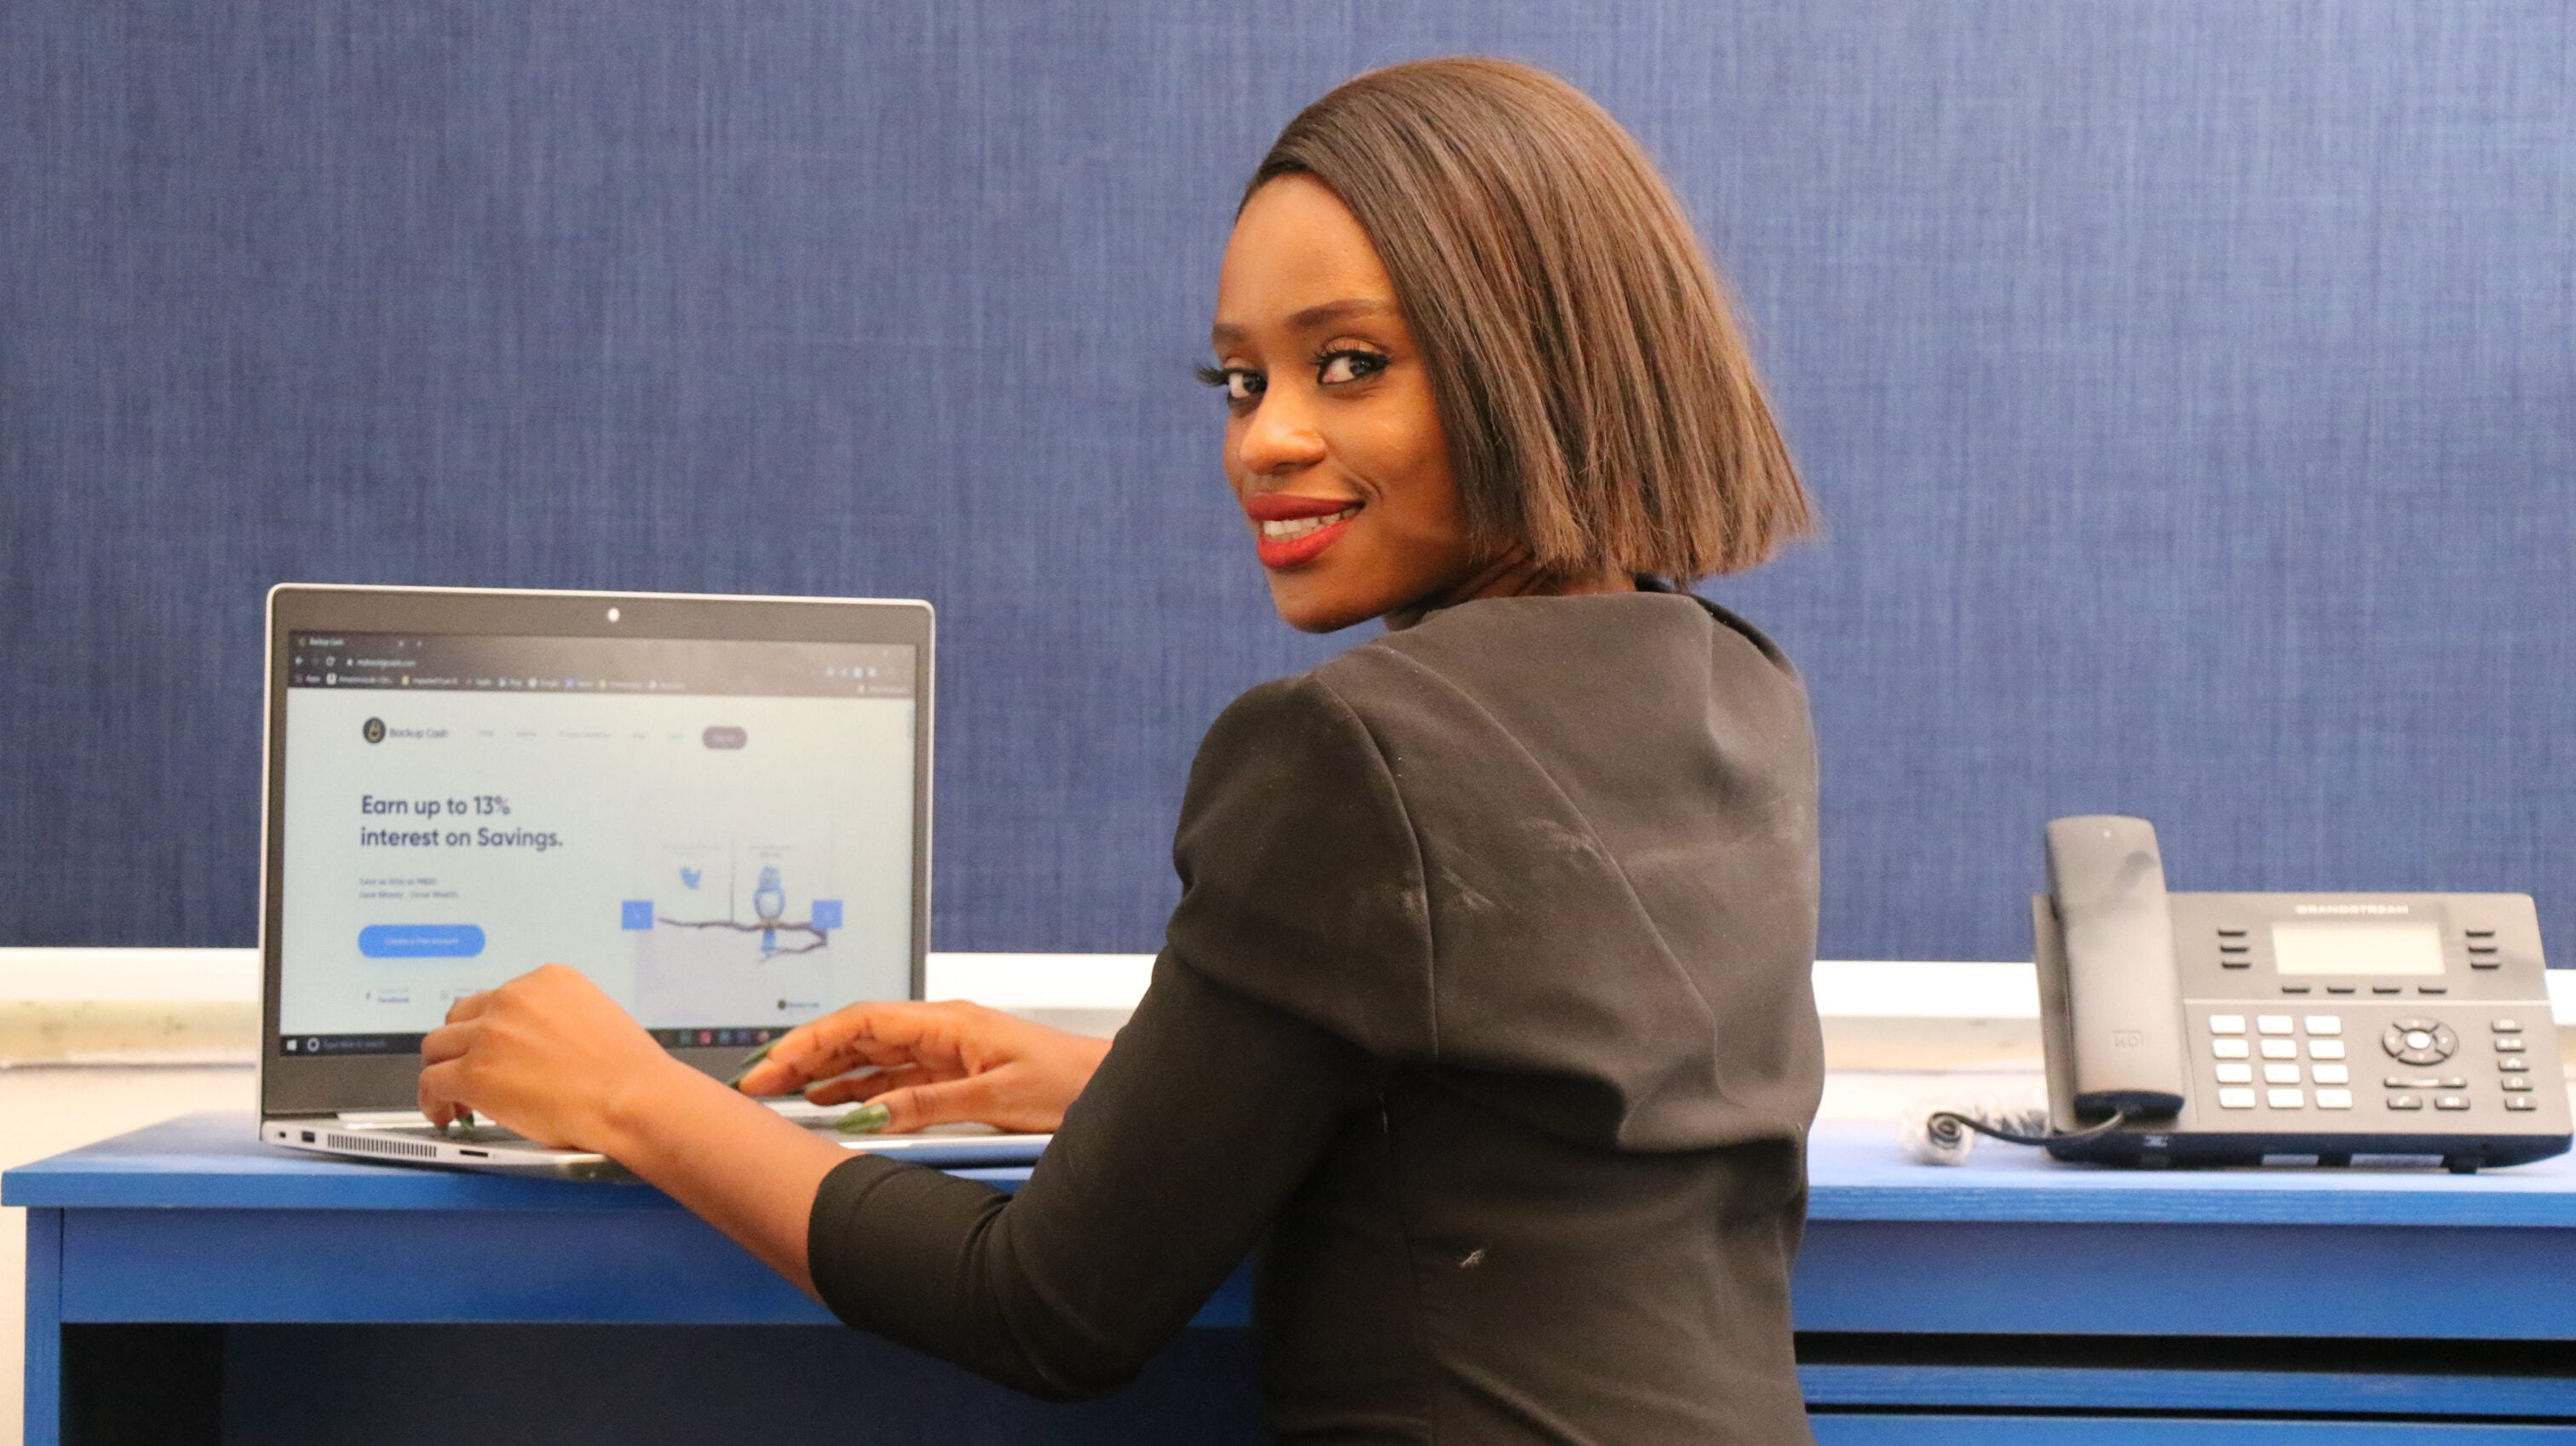 African career woman at work